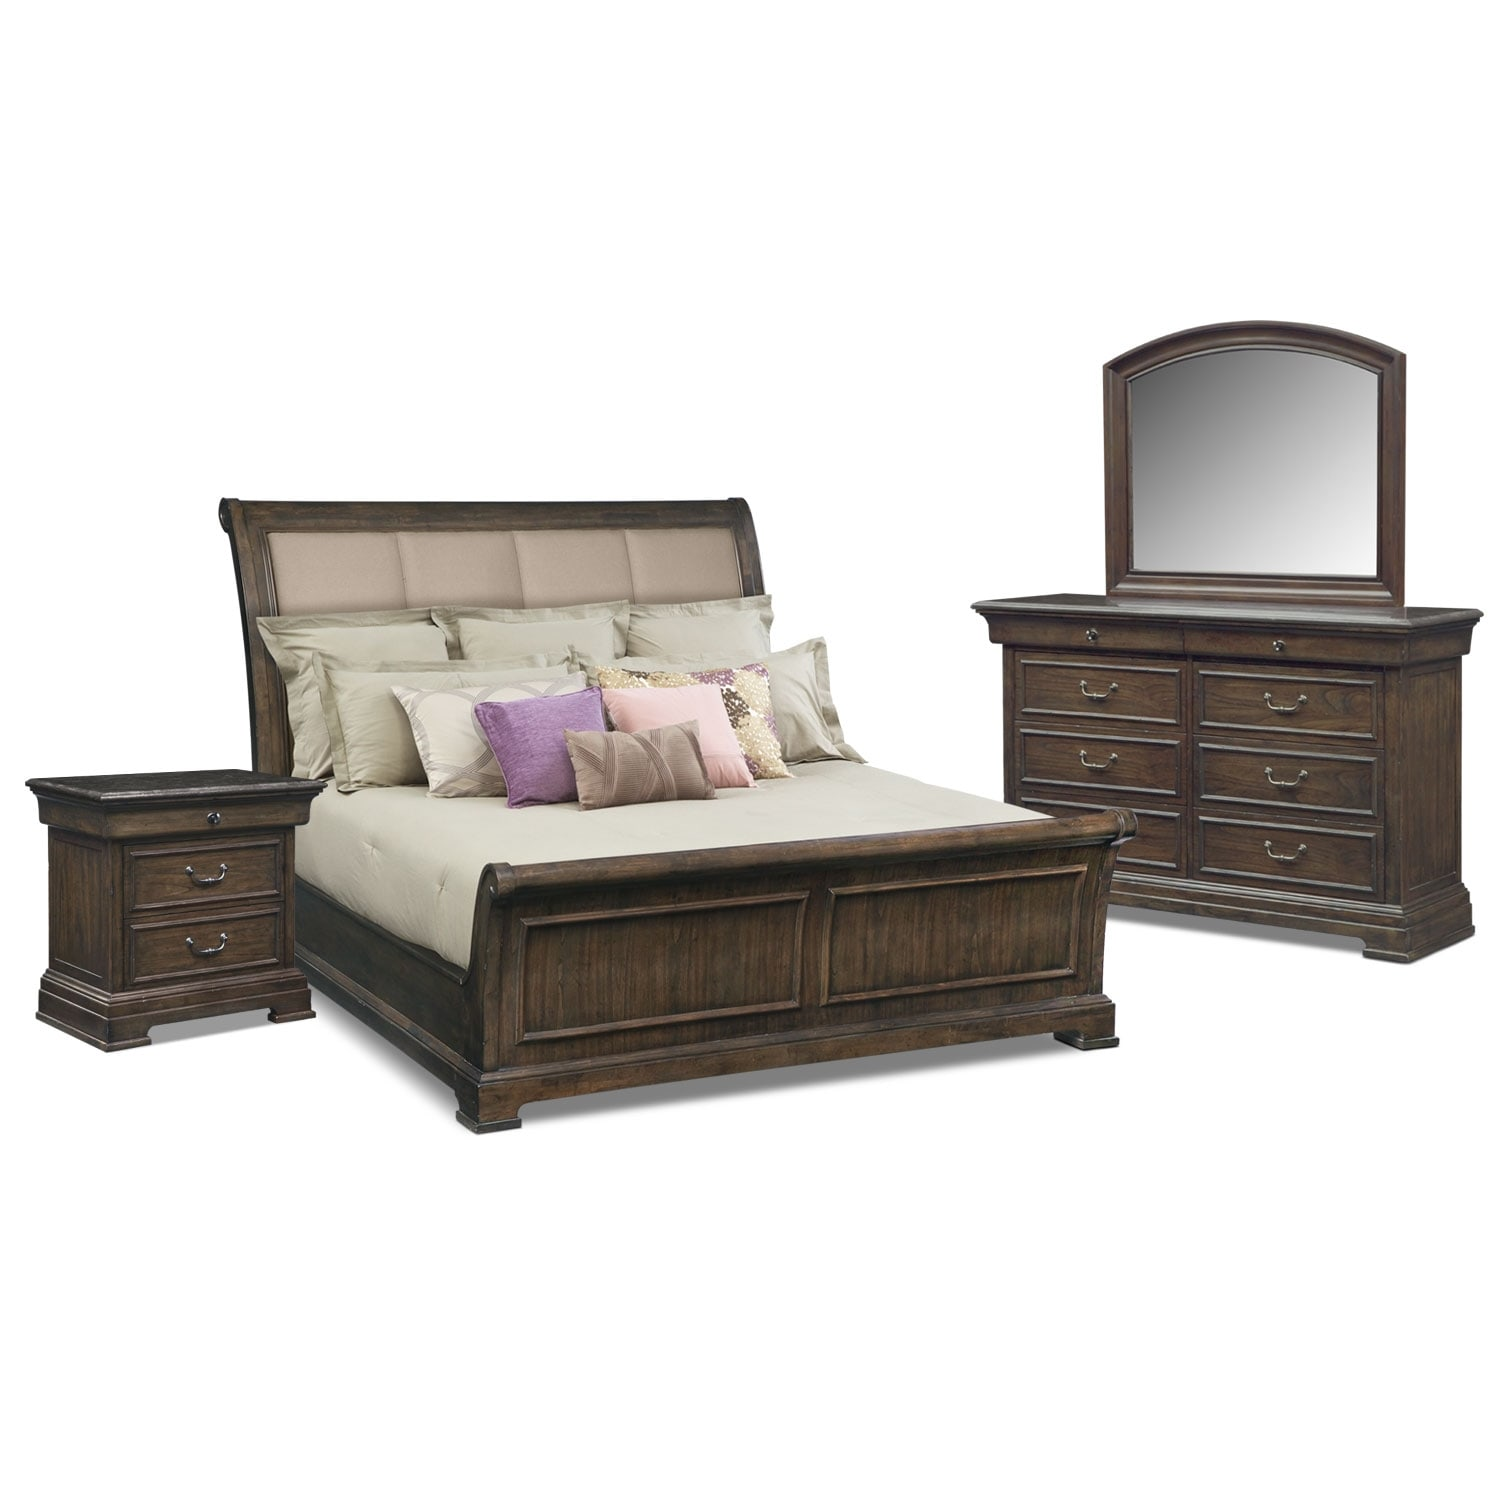 Collinwood 6 Pc. King Bedroom Package